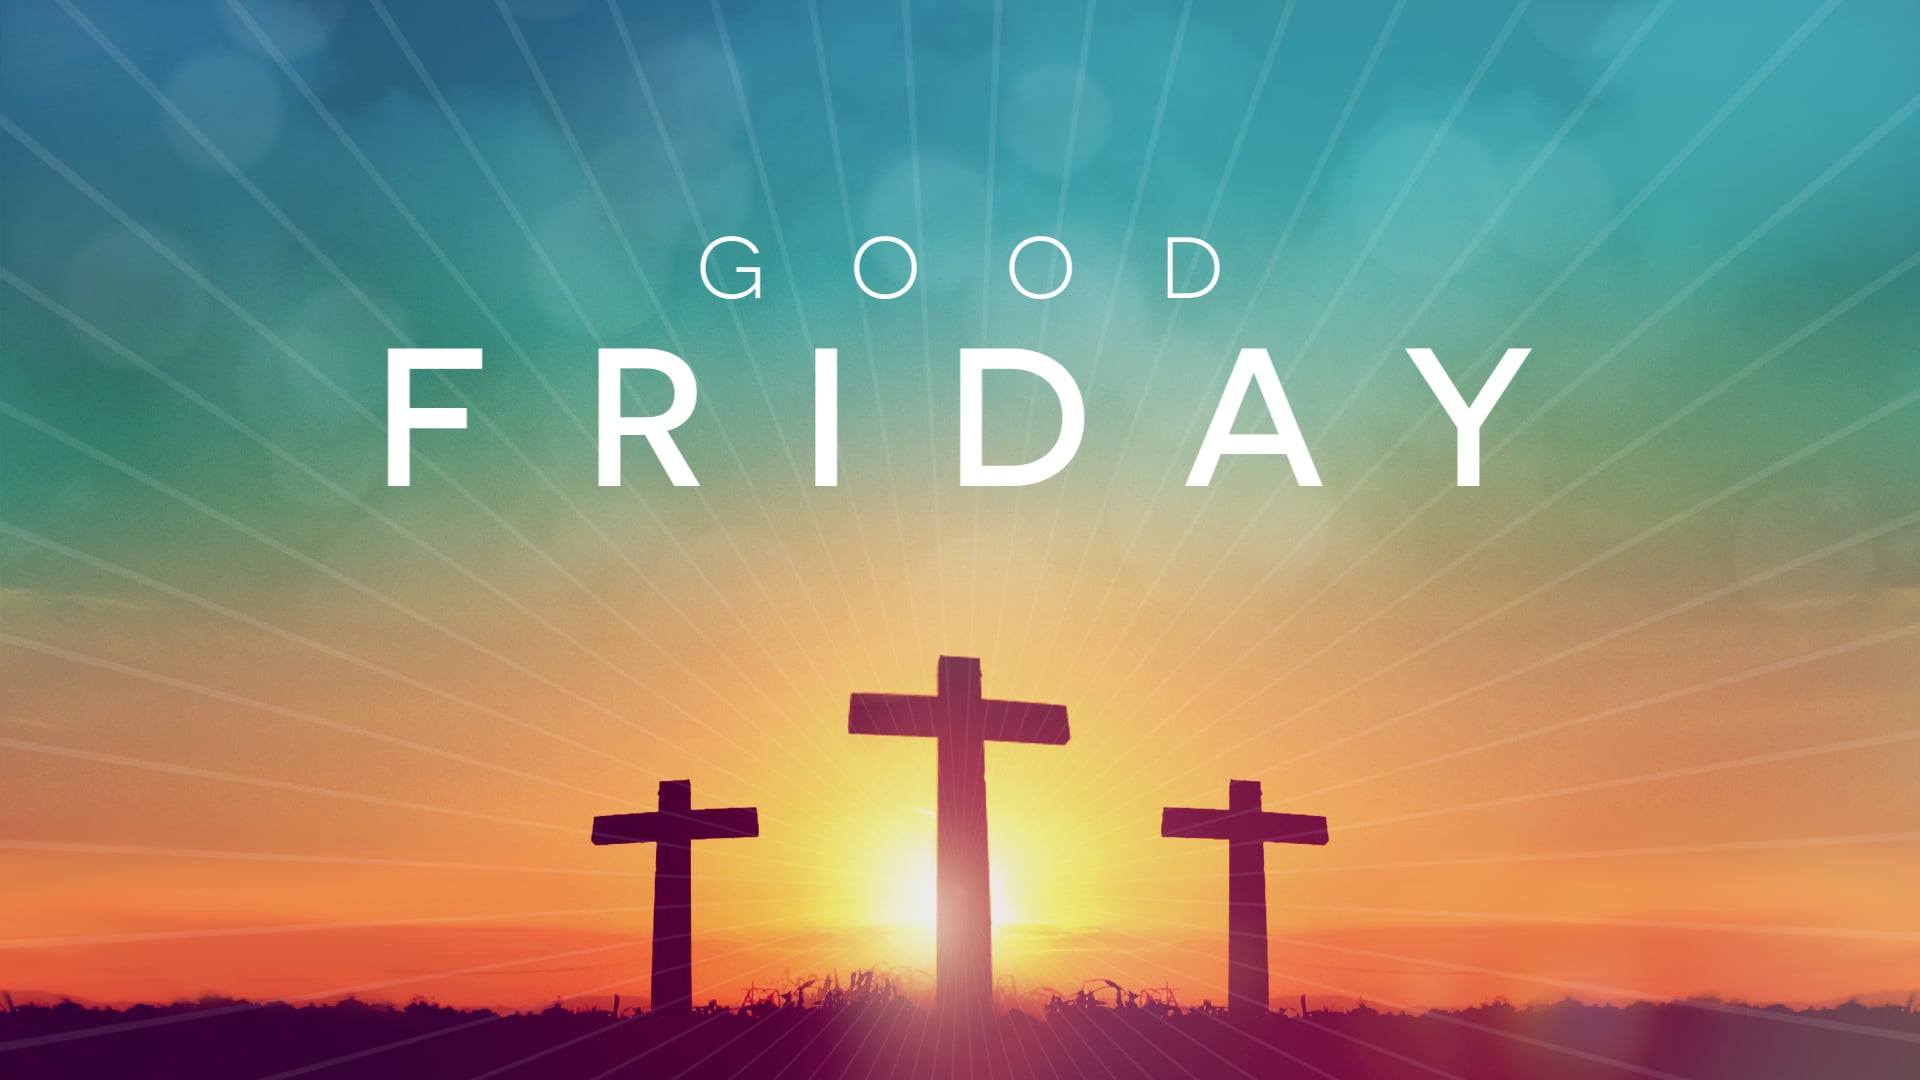 Images of Good Friday 2017 Wallpaper